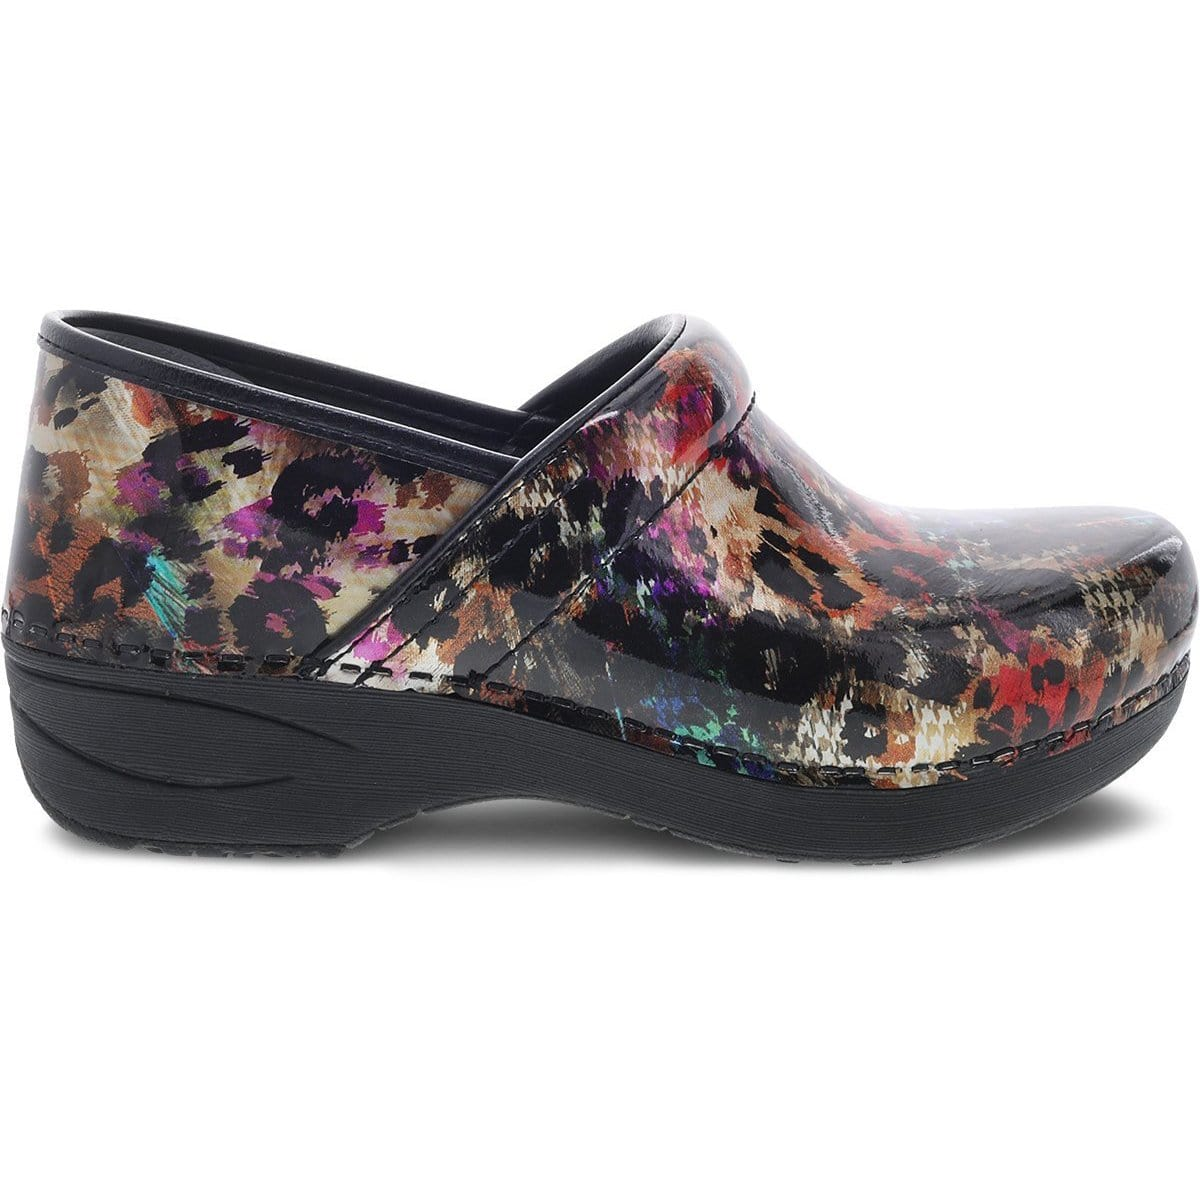 XP 2.0 Multi Leopard Patent Leather Clog